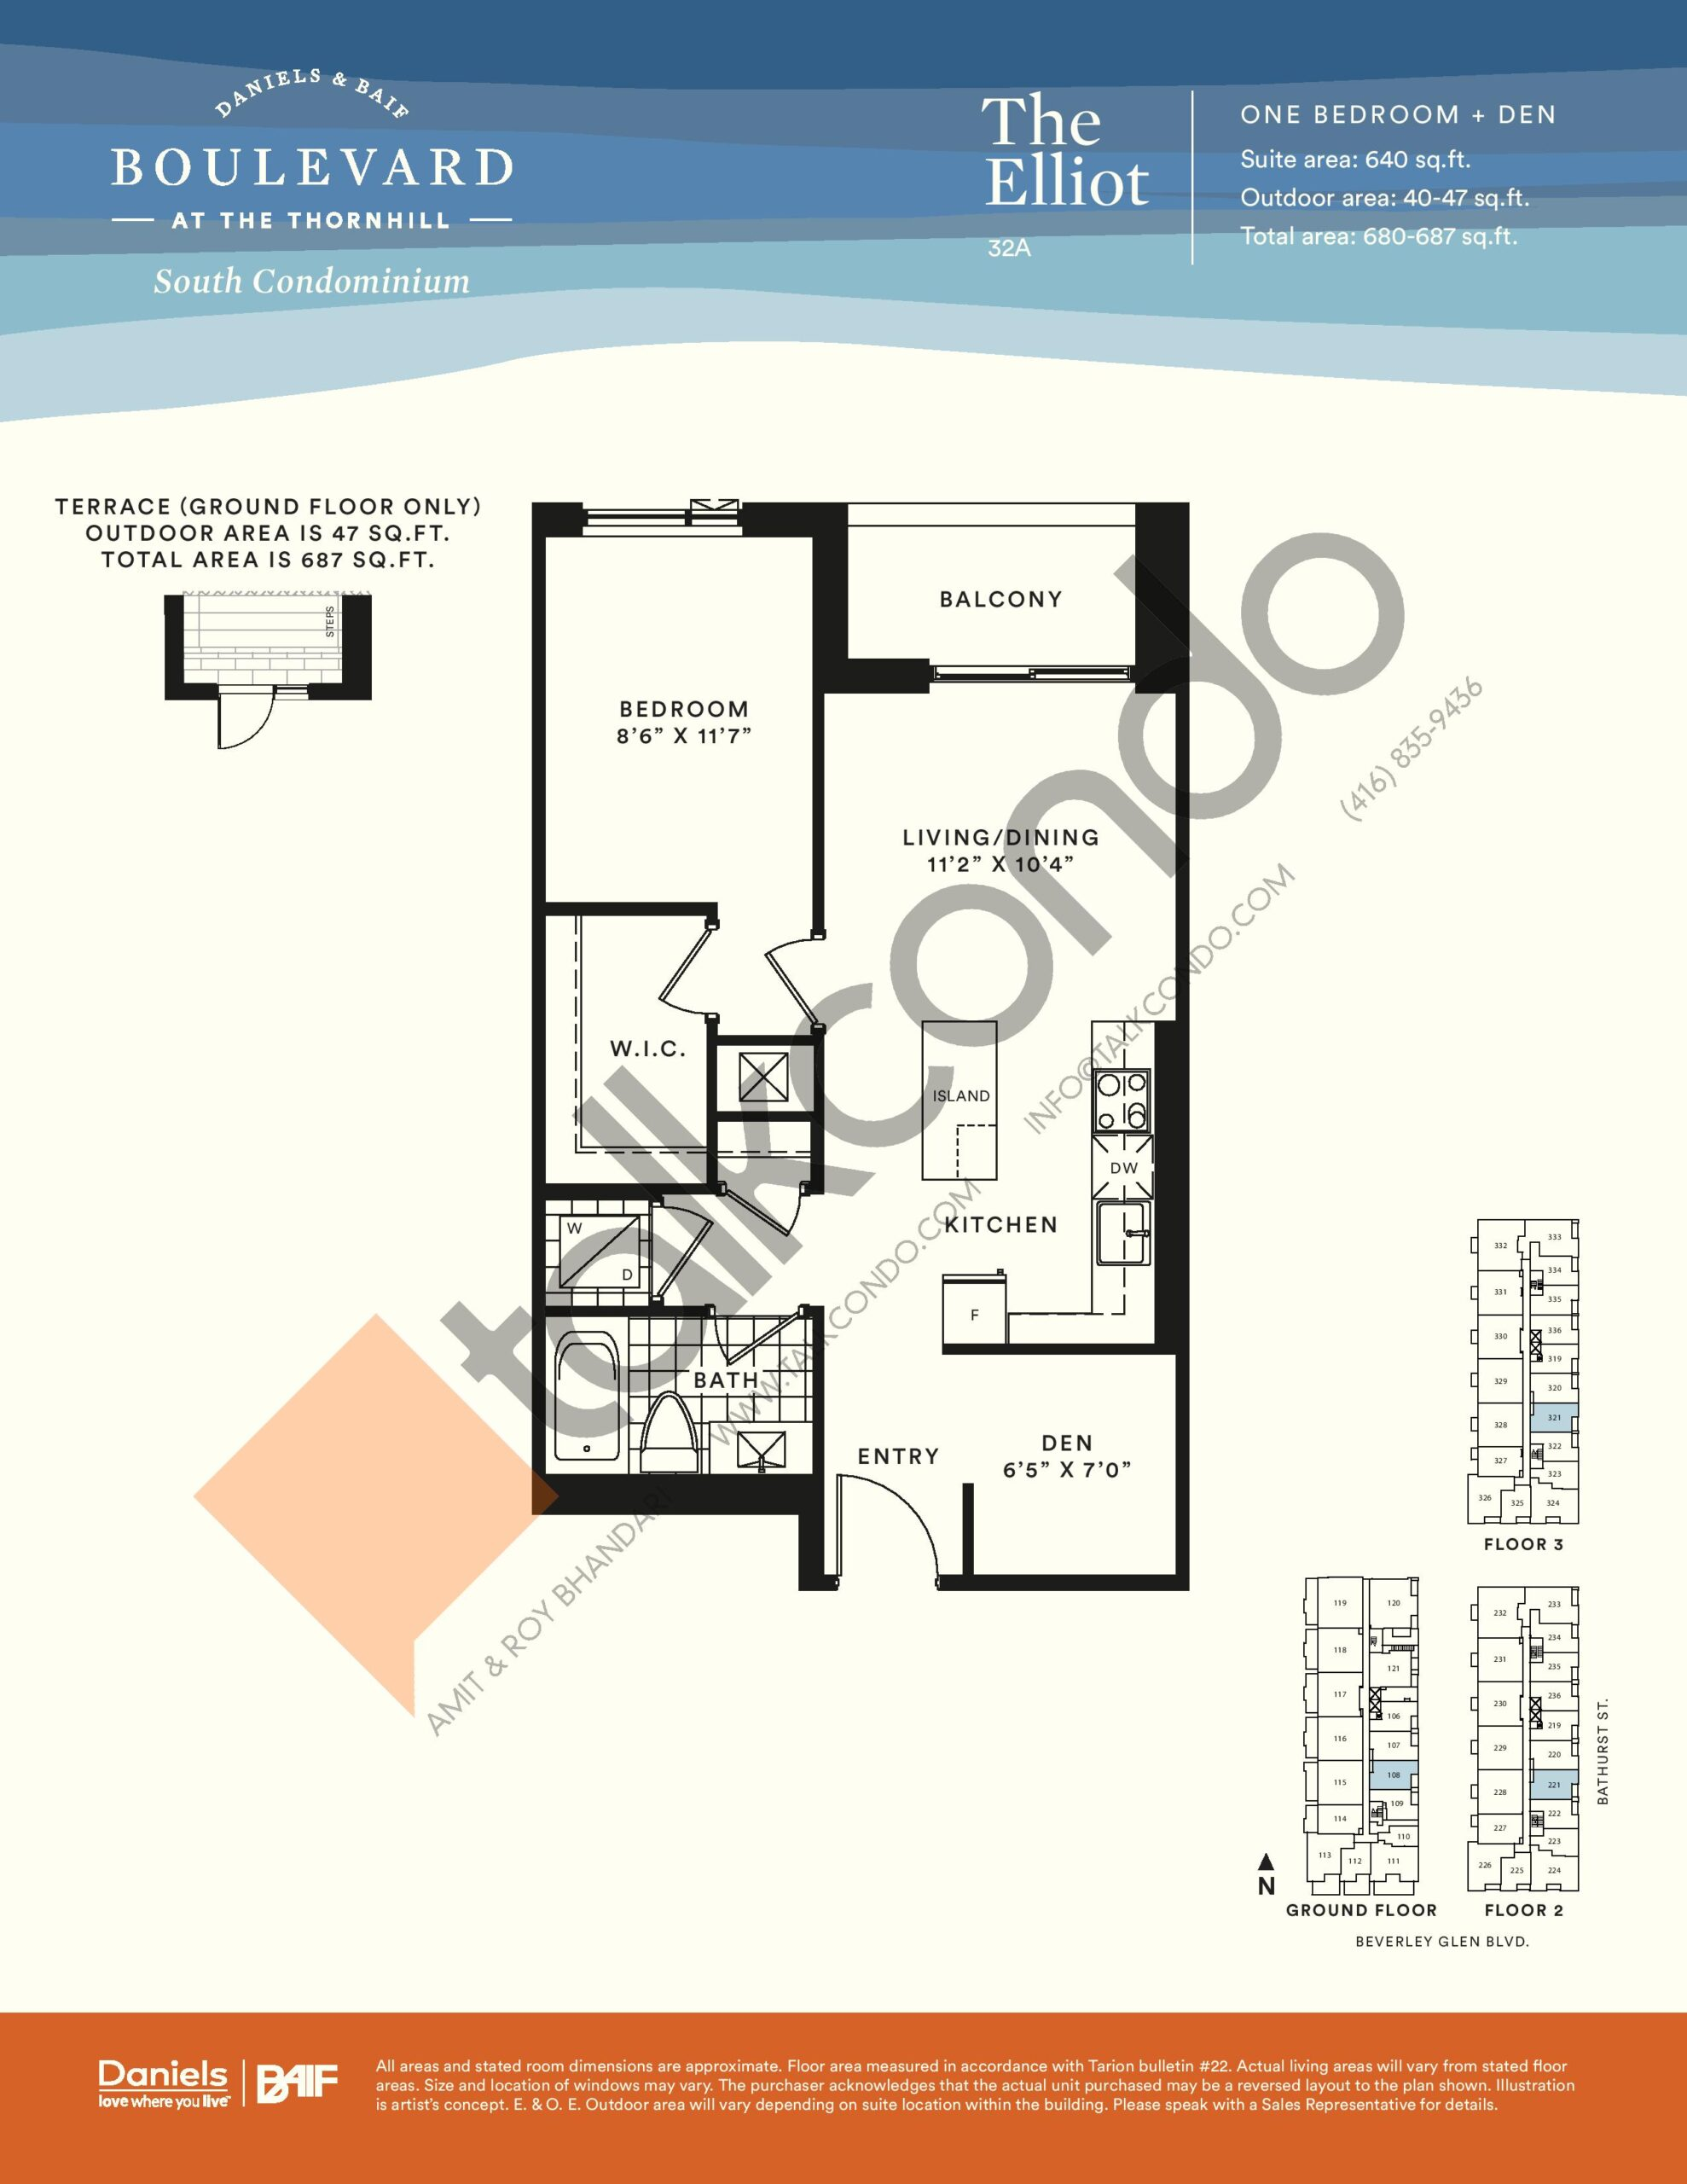 Boulevard At The Thornhill Condos The Elliot South Tower 640 Sq Ft 1 5 Bedrooms